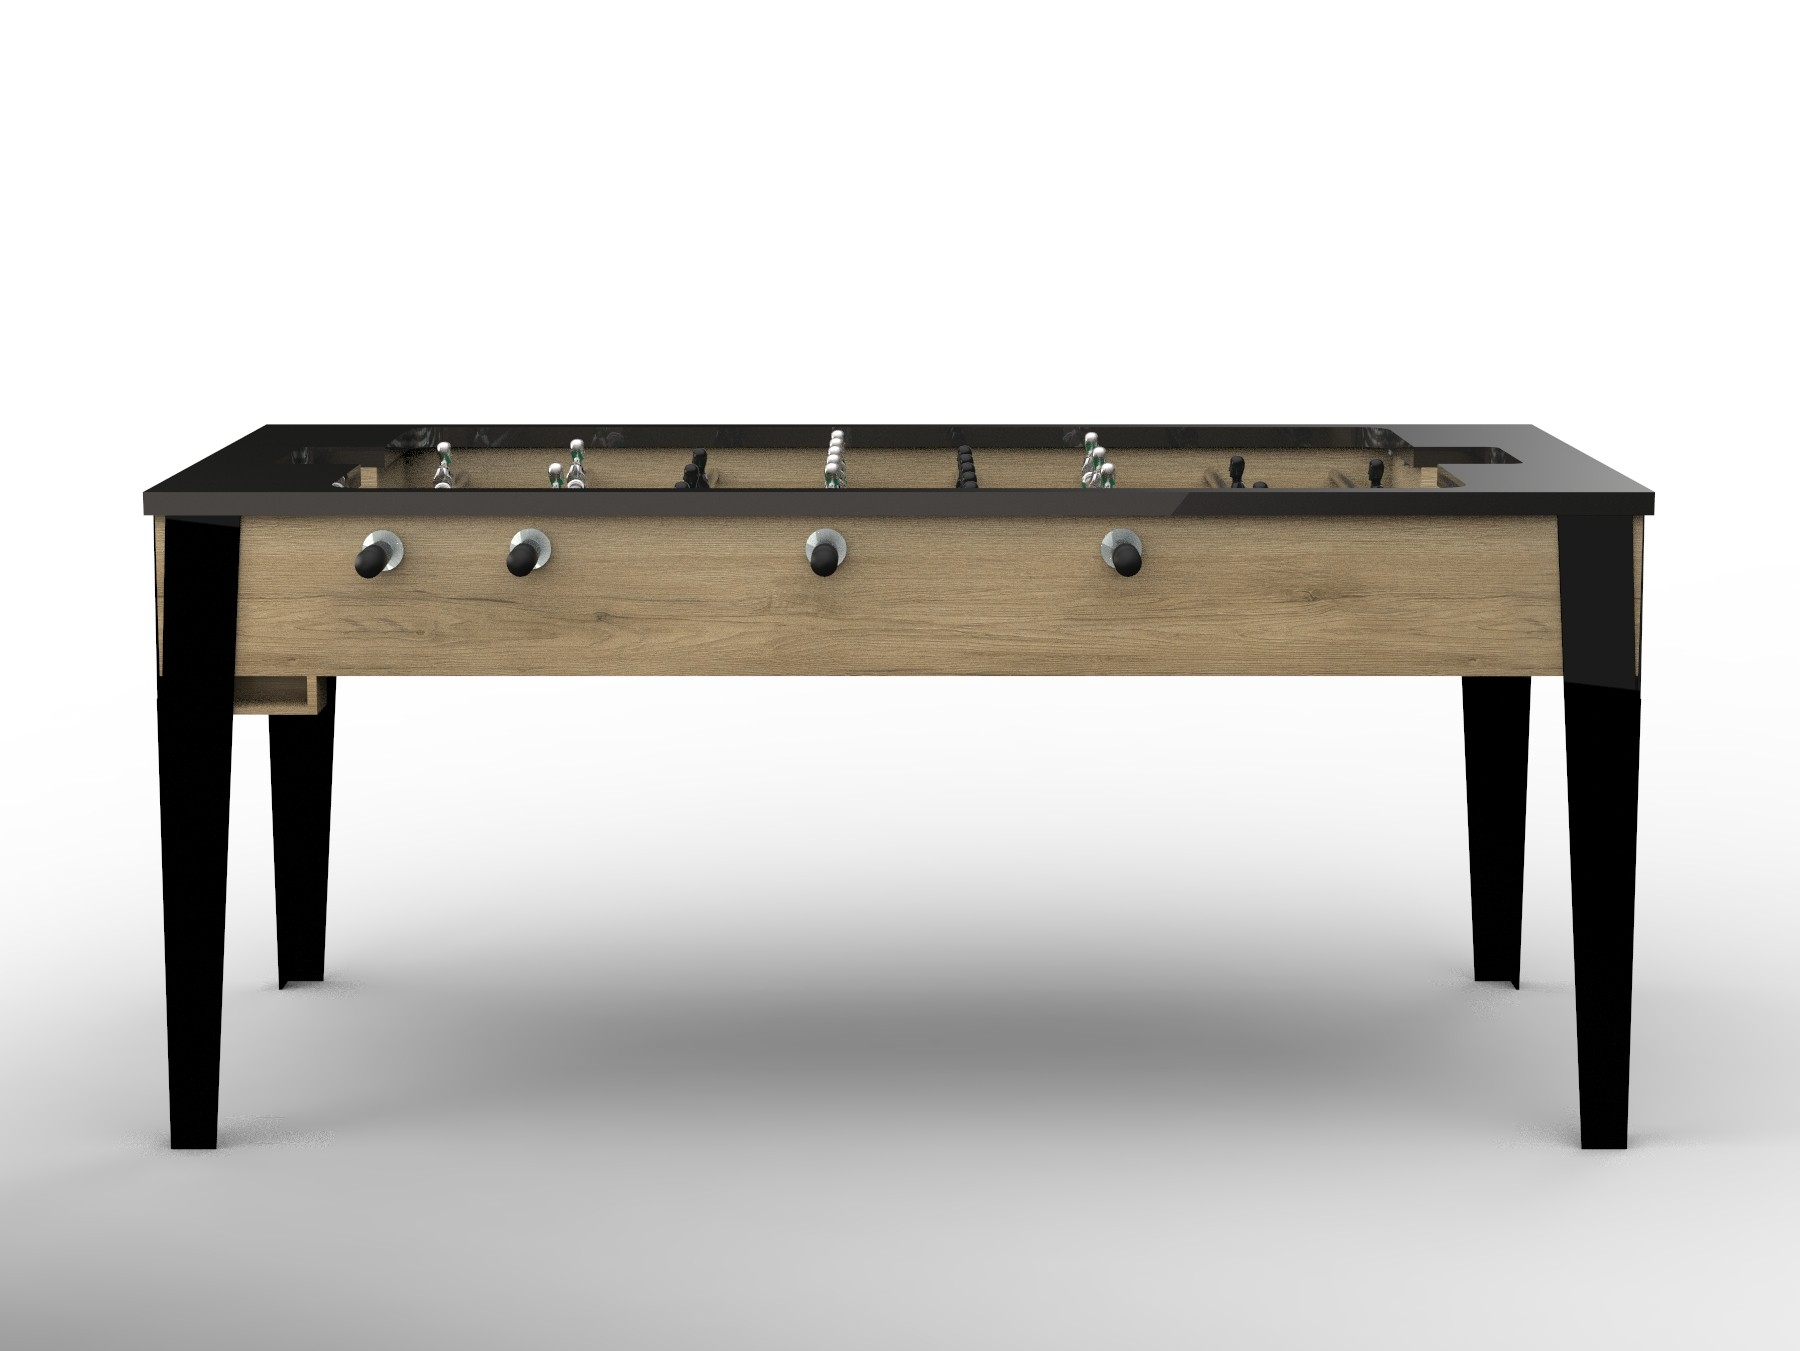 29 billard table livea eurobillards 100 billard de. Black Bedroom Furniture Sets. Home Design Ideas